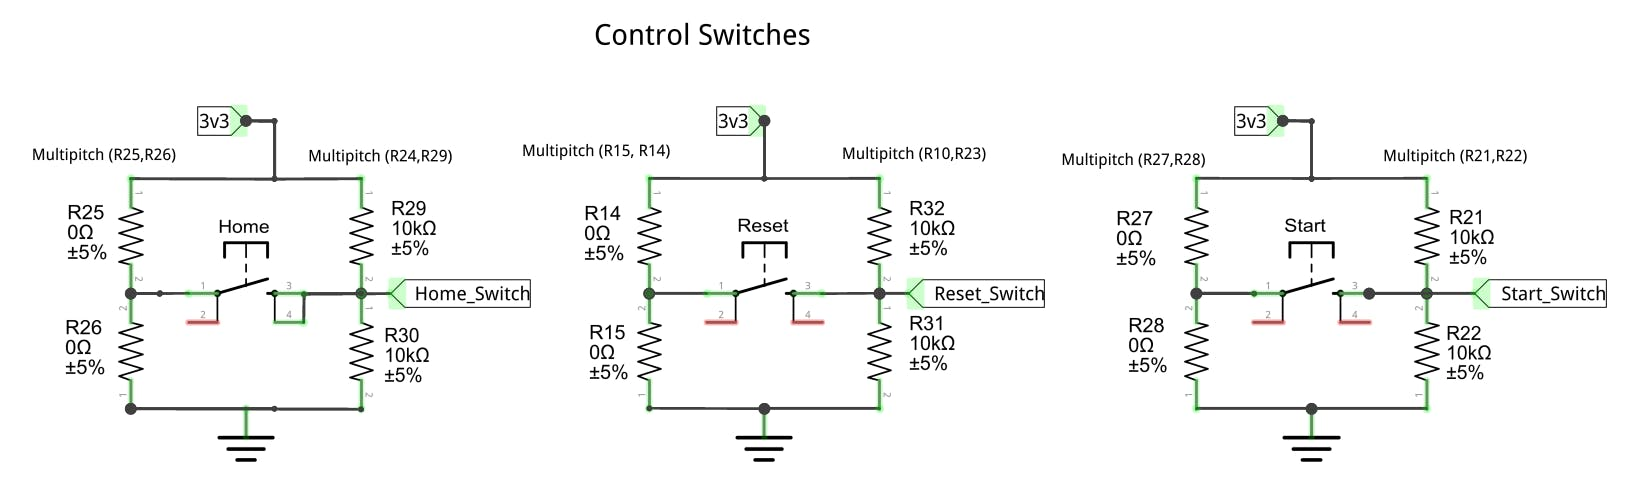 Control Switches